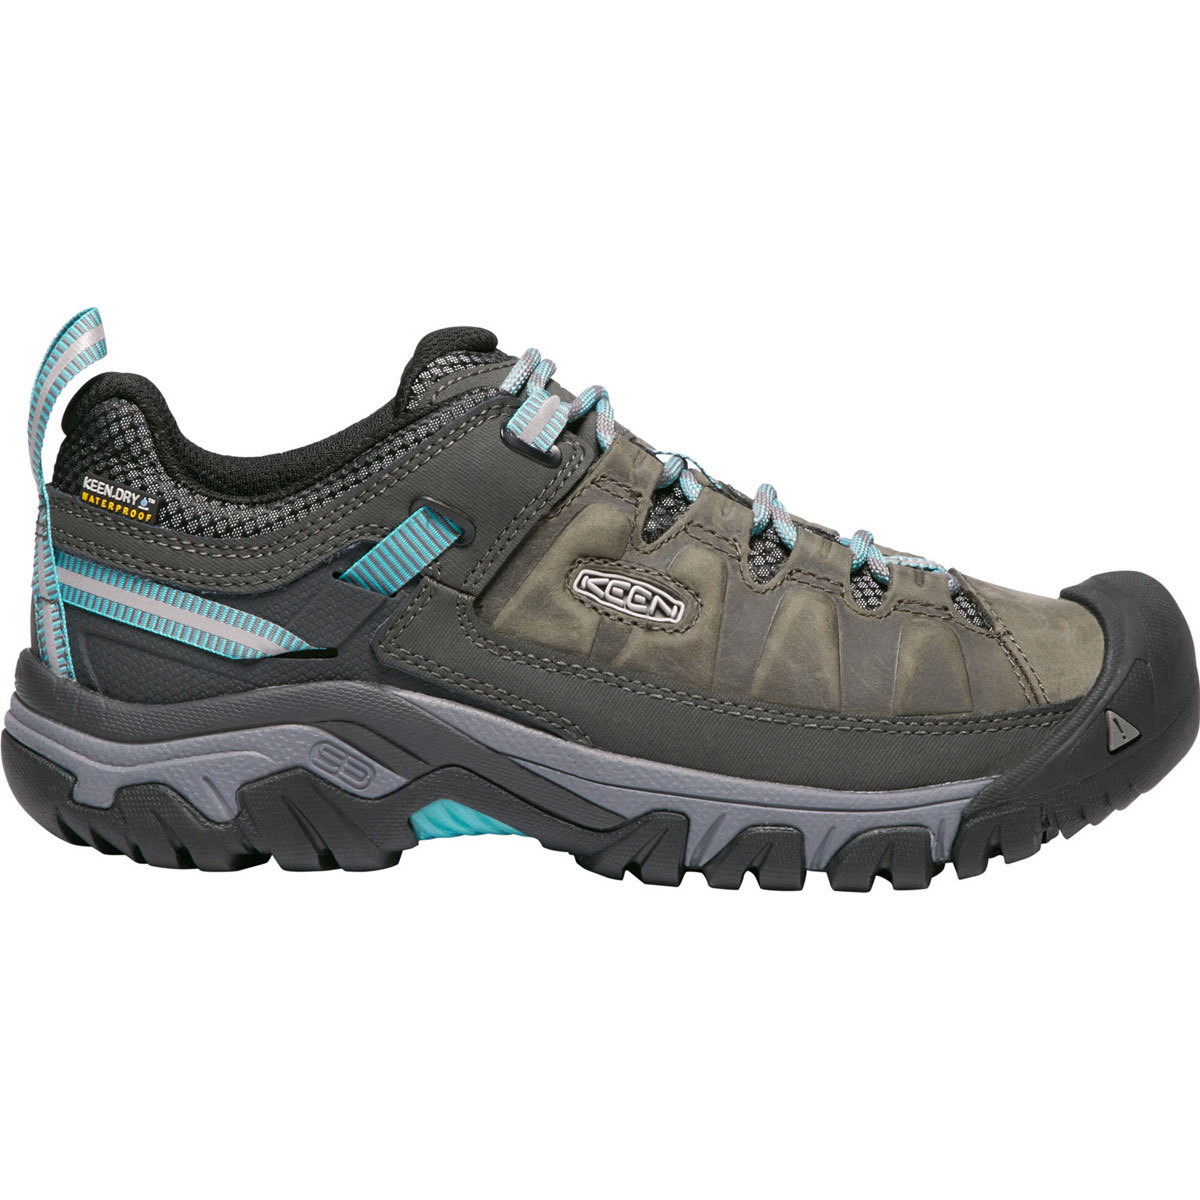 Keen Women's Targhee Iii Waterproof Low Hiking Shoes - Black, 11